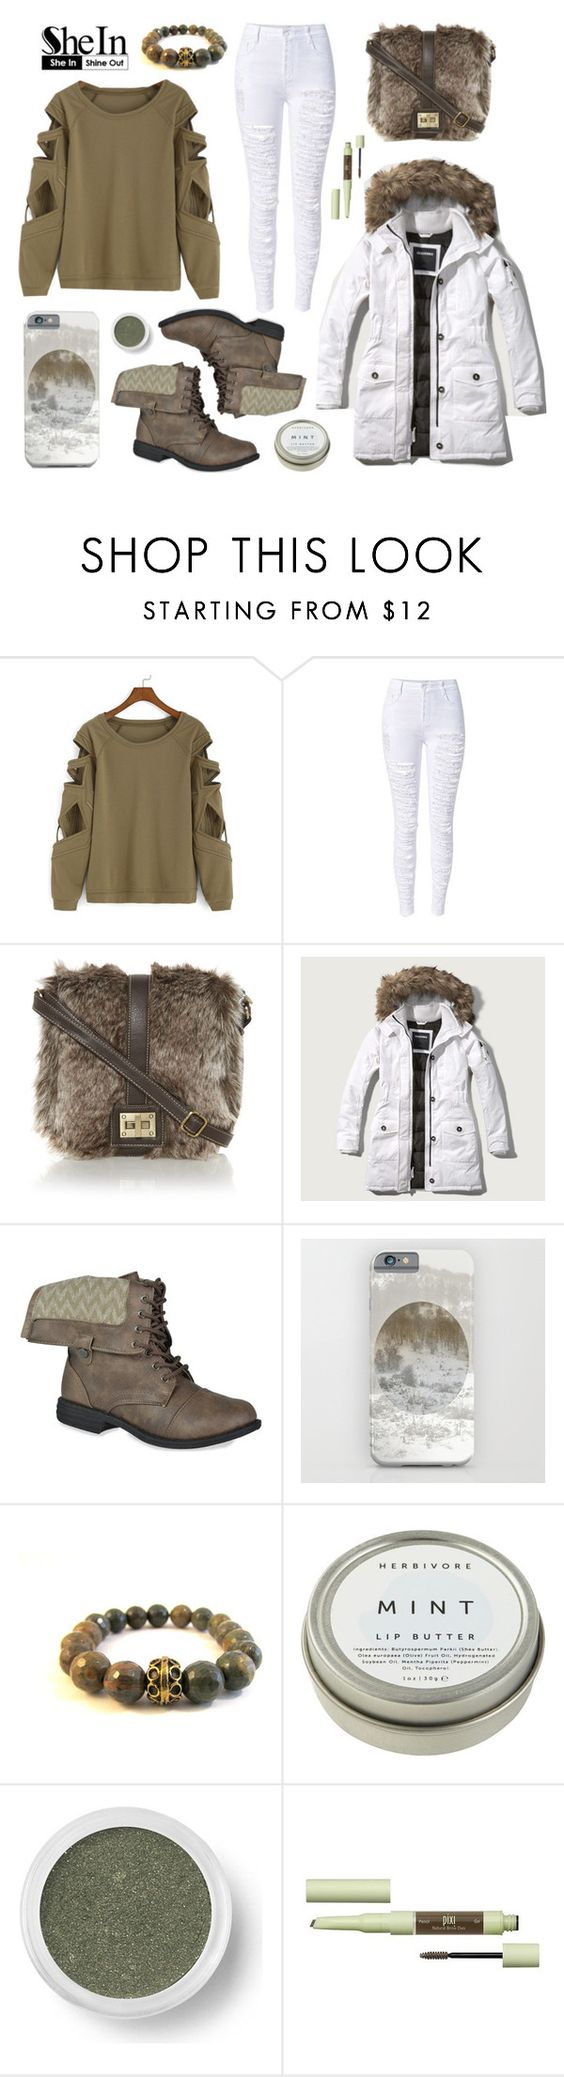 """Shein Contest • Green Sweatshirt"" by by-jwp ❤ liked on Polyvore featuring Abercrombie & Fitch, CB2, Bare Escentuals and Pixi"